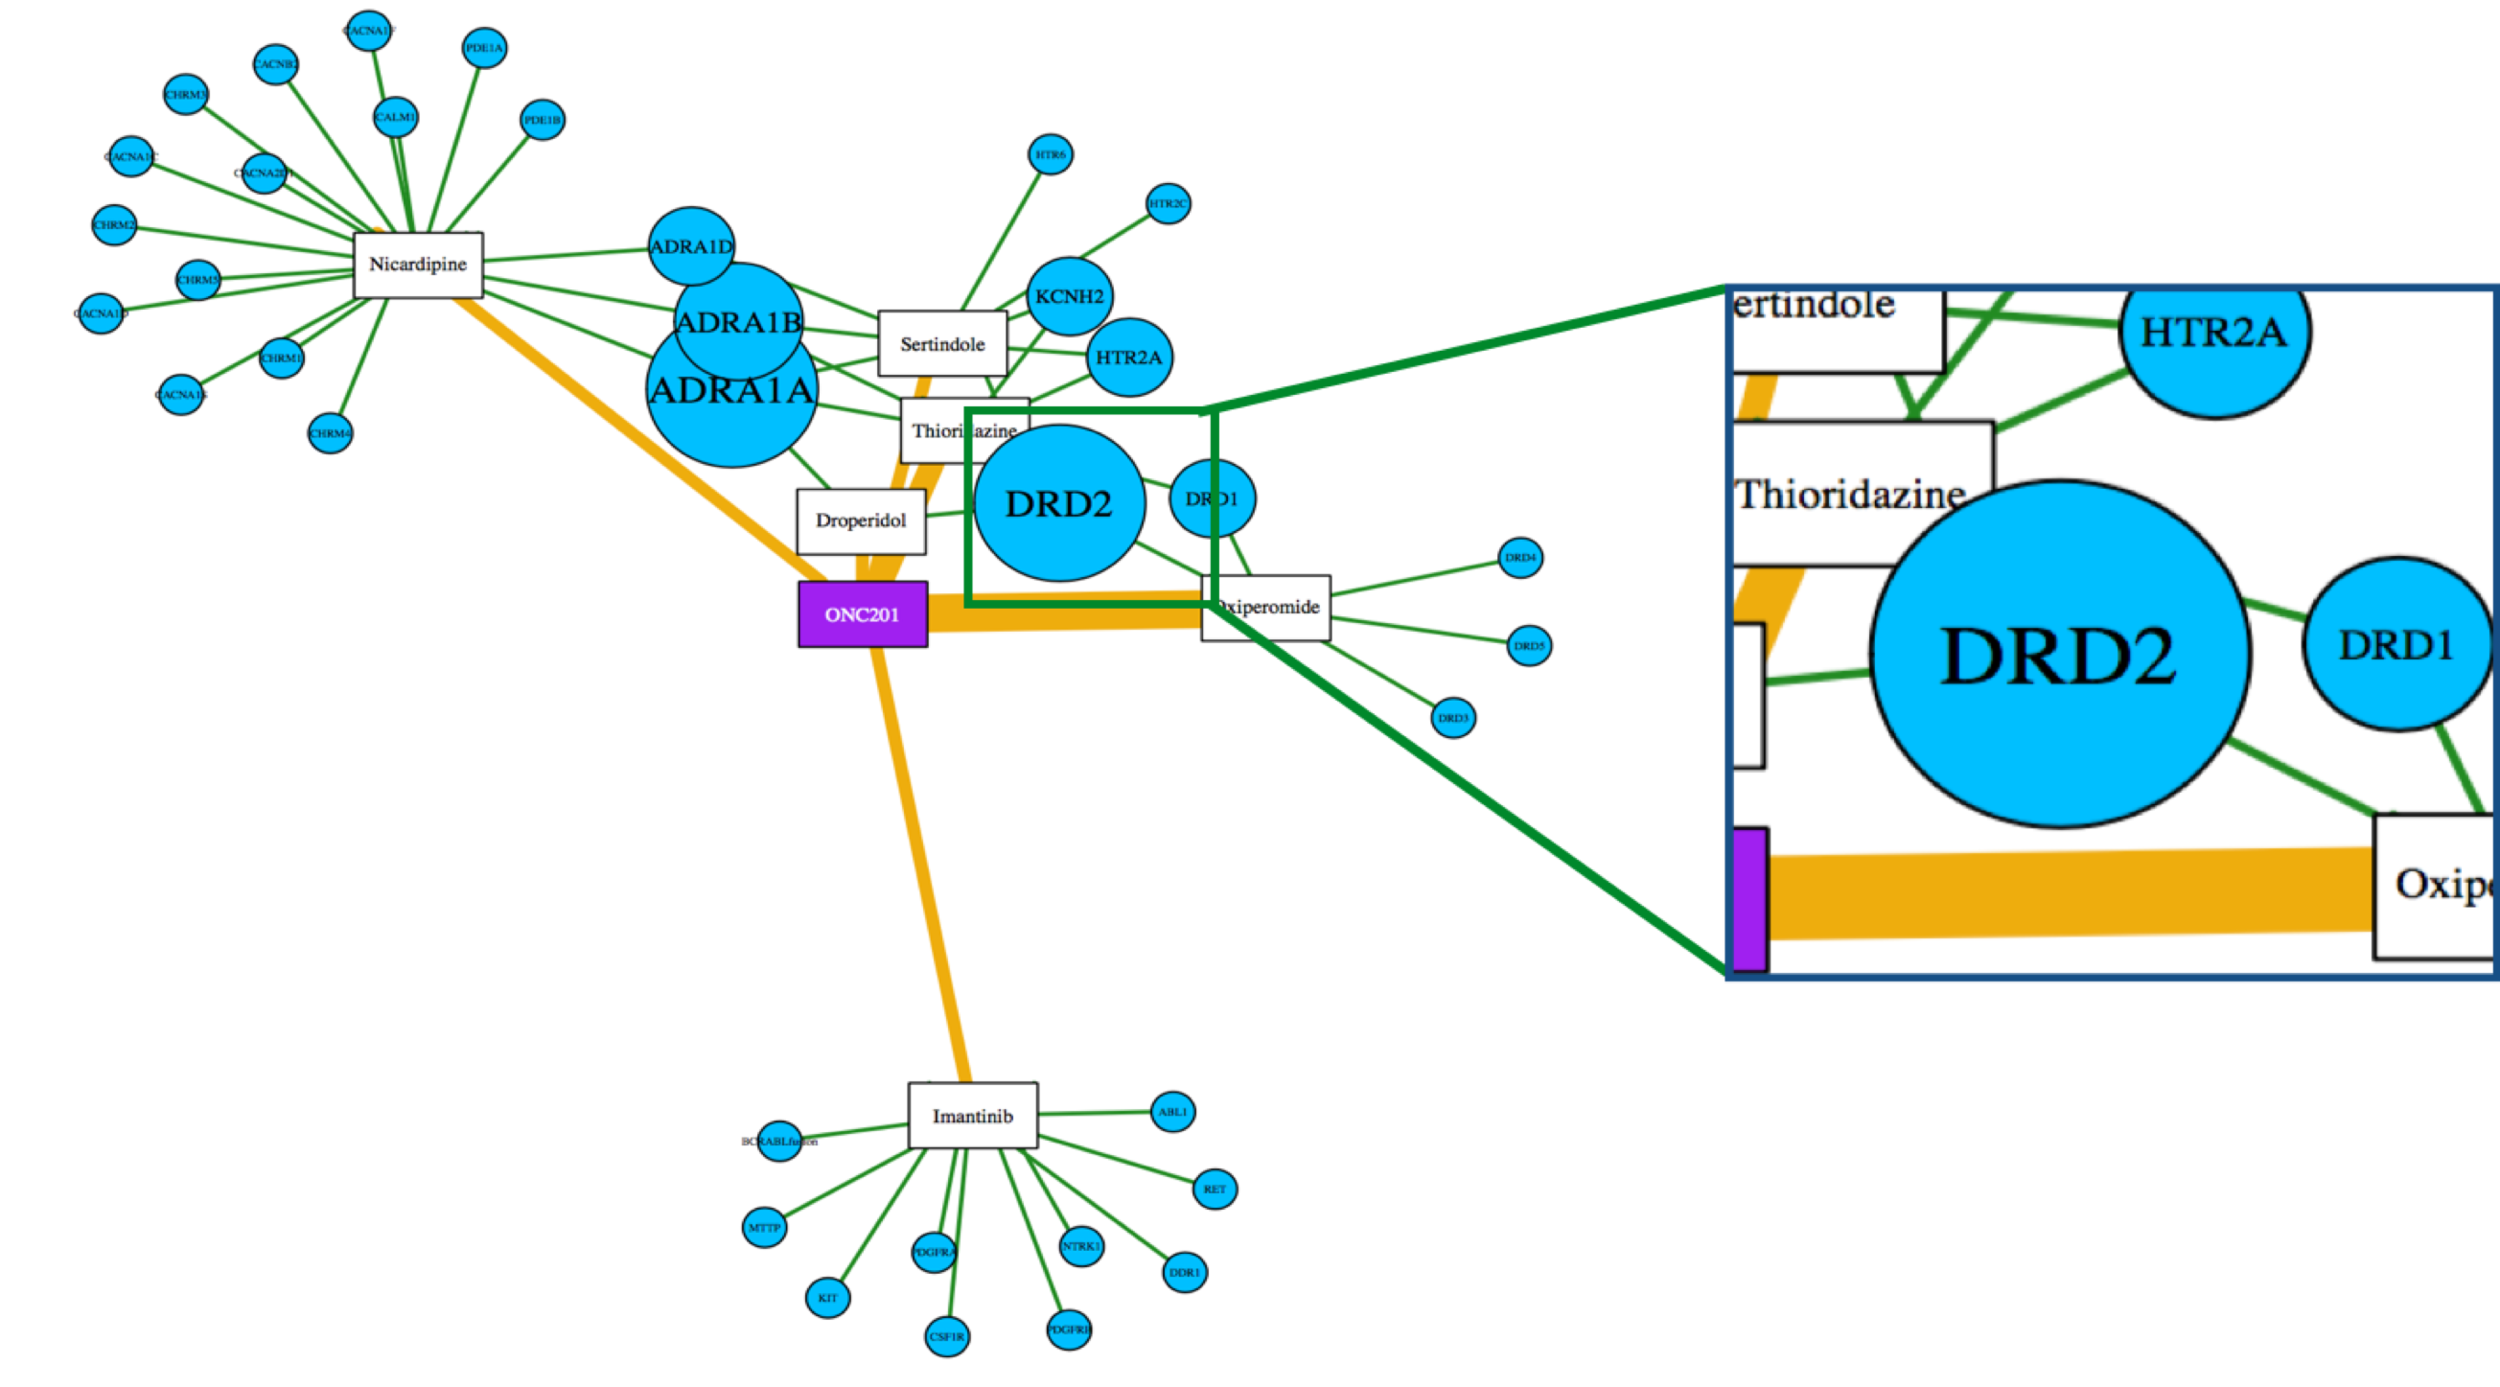 DRD2Network.png